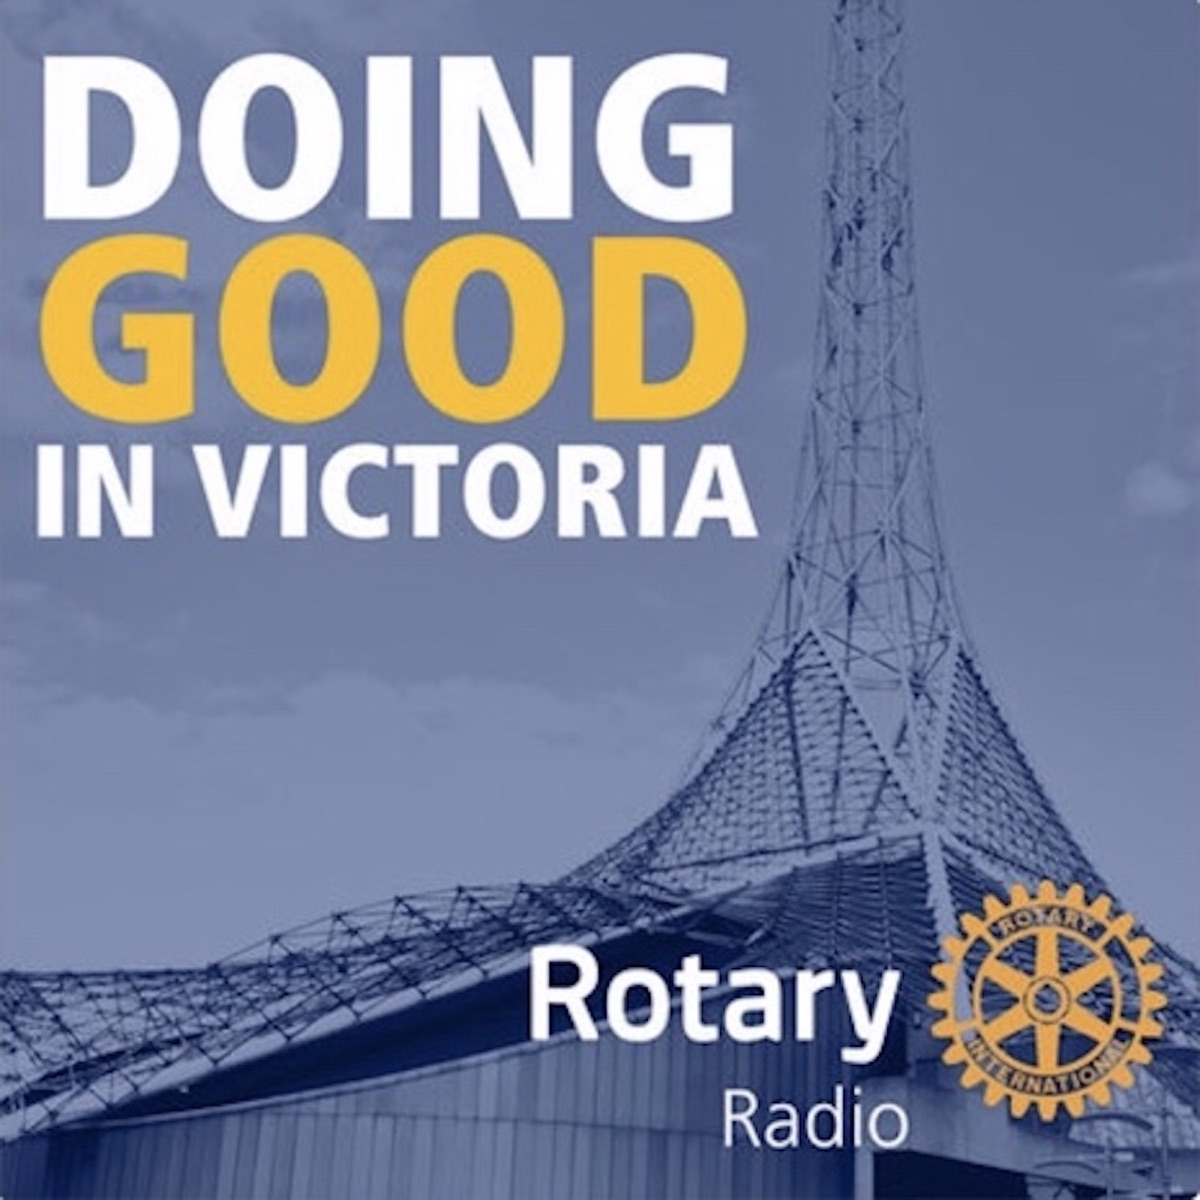 Rotary Radio | Doing good in Victoria